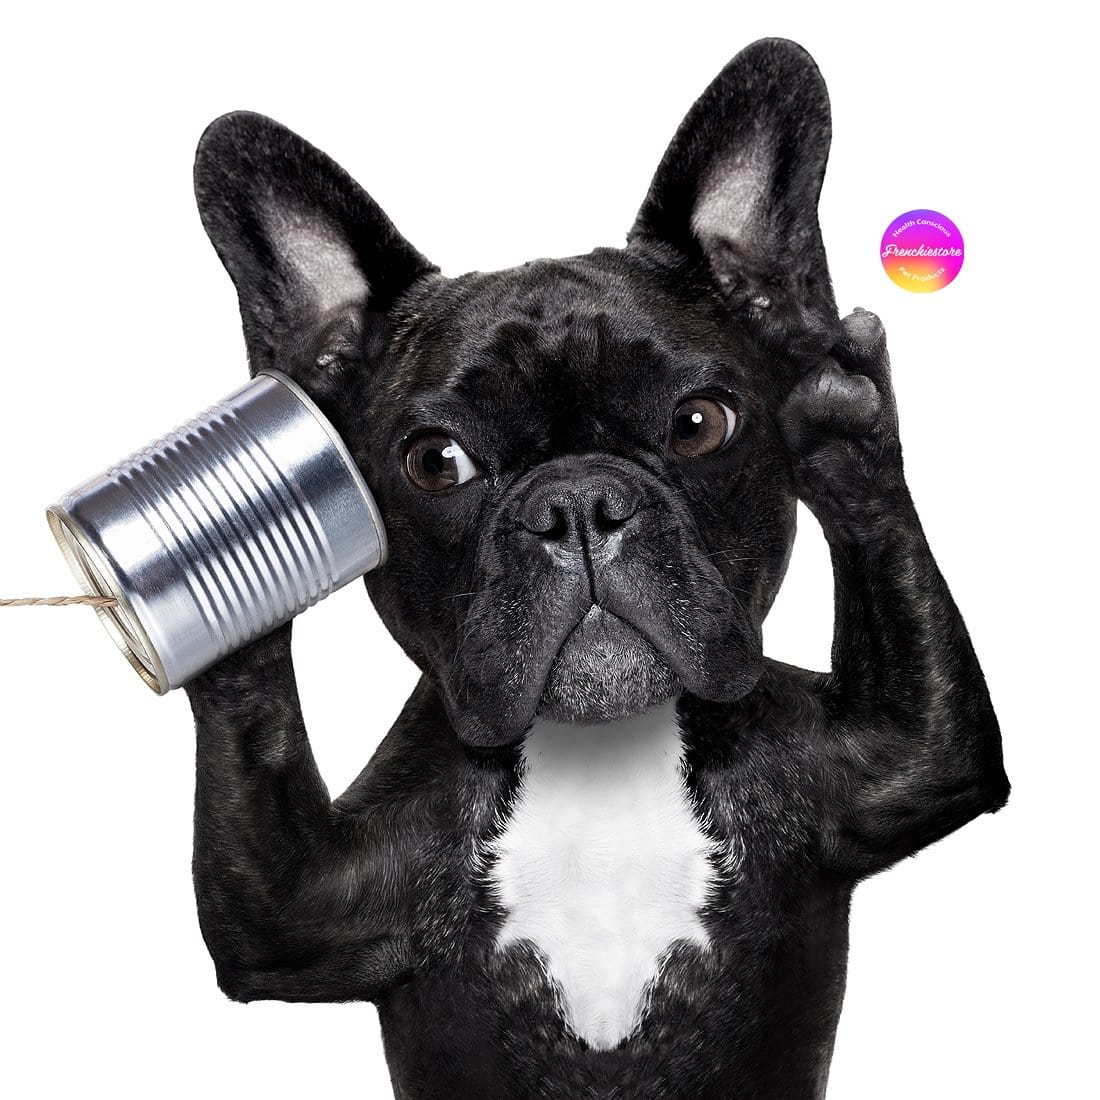 BLACK DEAF FRENCHIE HOLDING A CAN TO HIS EAR AND TRYING TO LISTEN